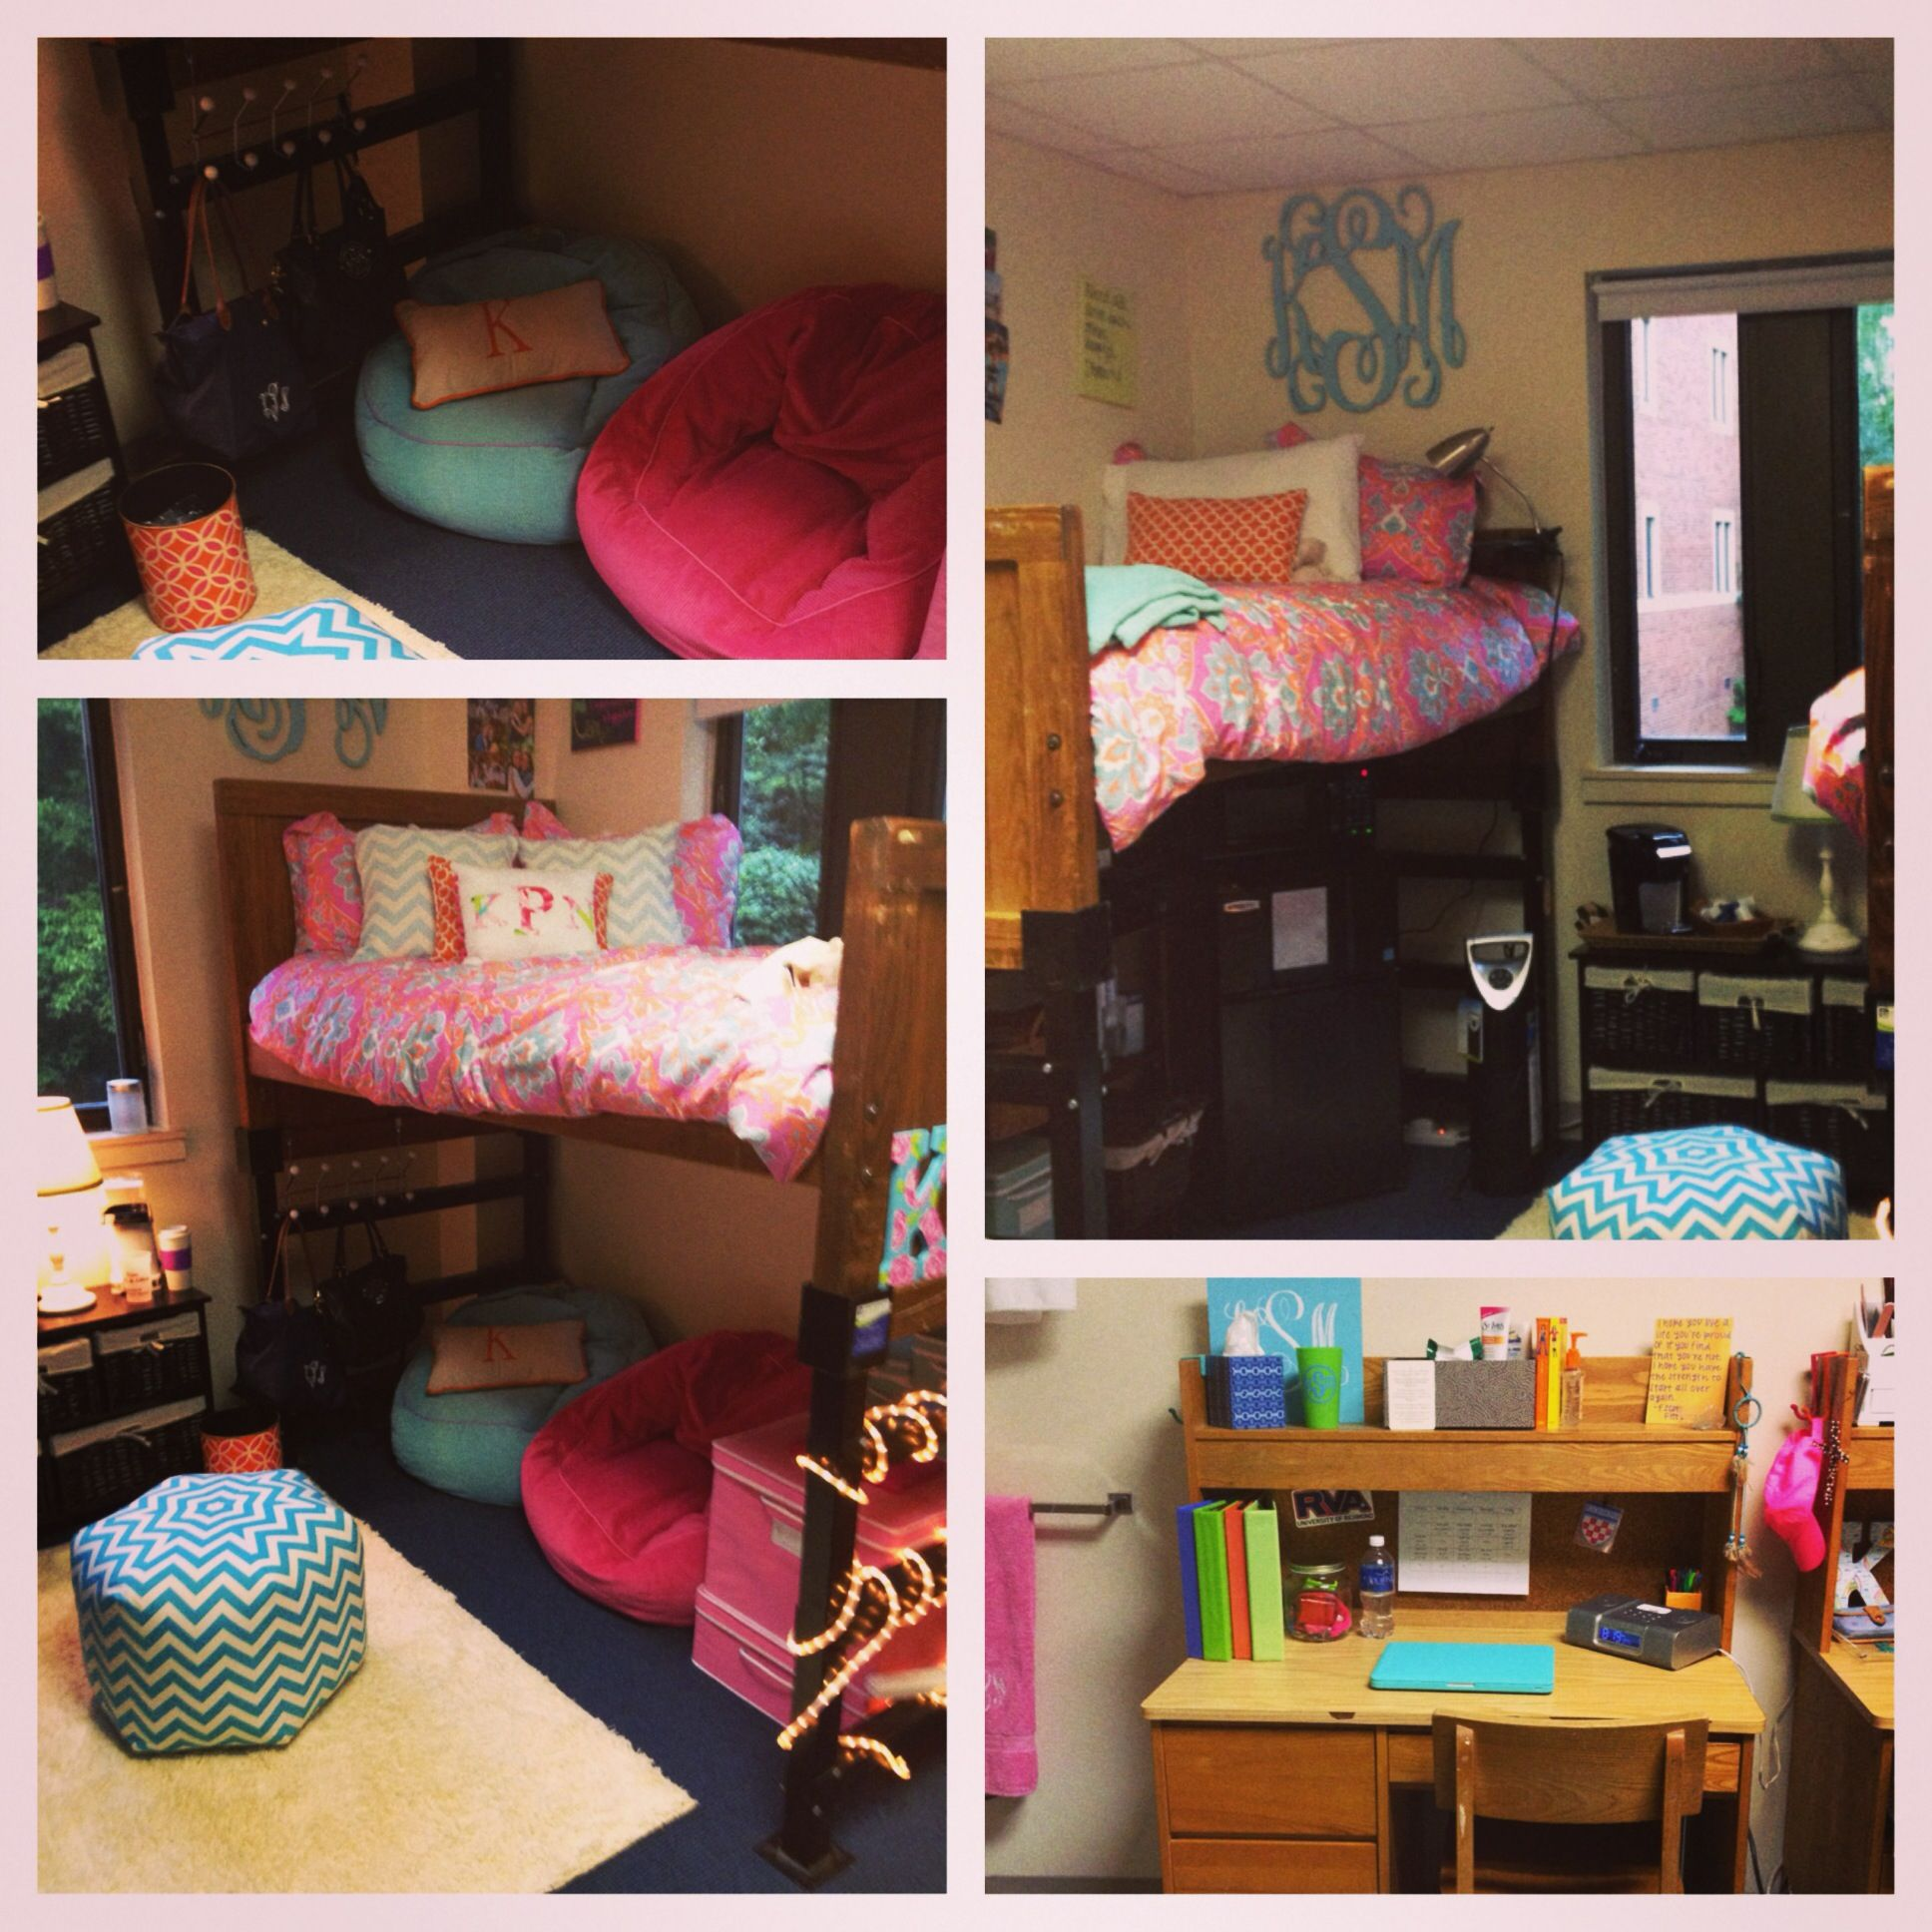 College Life Dorm Uofr Tessa Mcdaniel Degeest We Could Do Bean Bags Too Instead Of A Futon